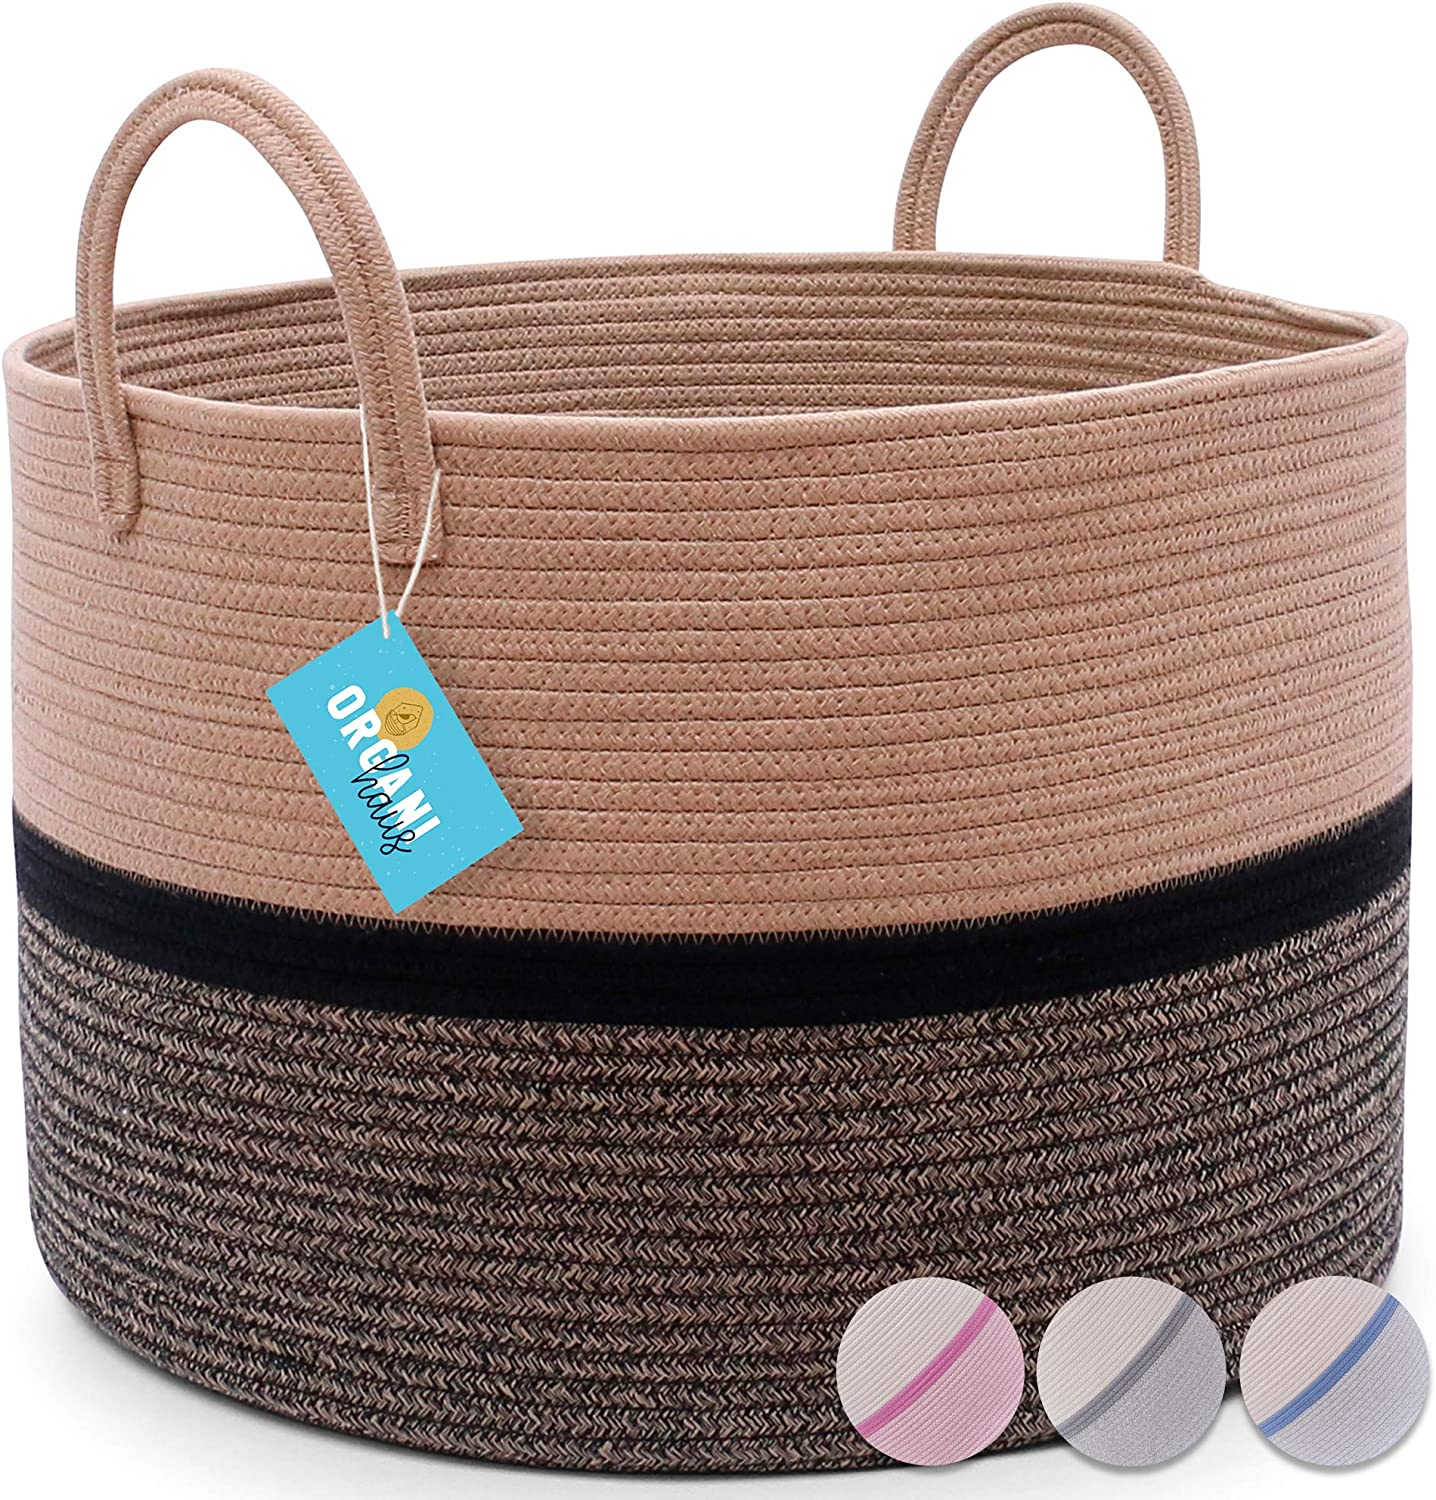 "OrganiHaus XXL Extra Large Cotton Rope Basket | 20""x13.5"" Nursery Storage Basket with Long Handles 